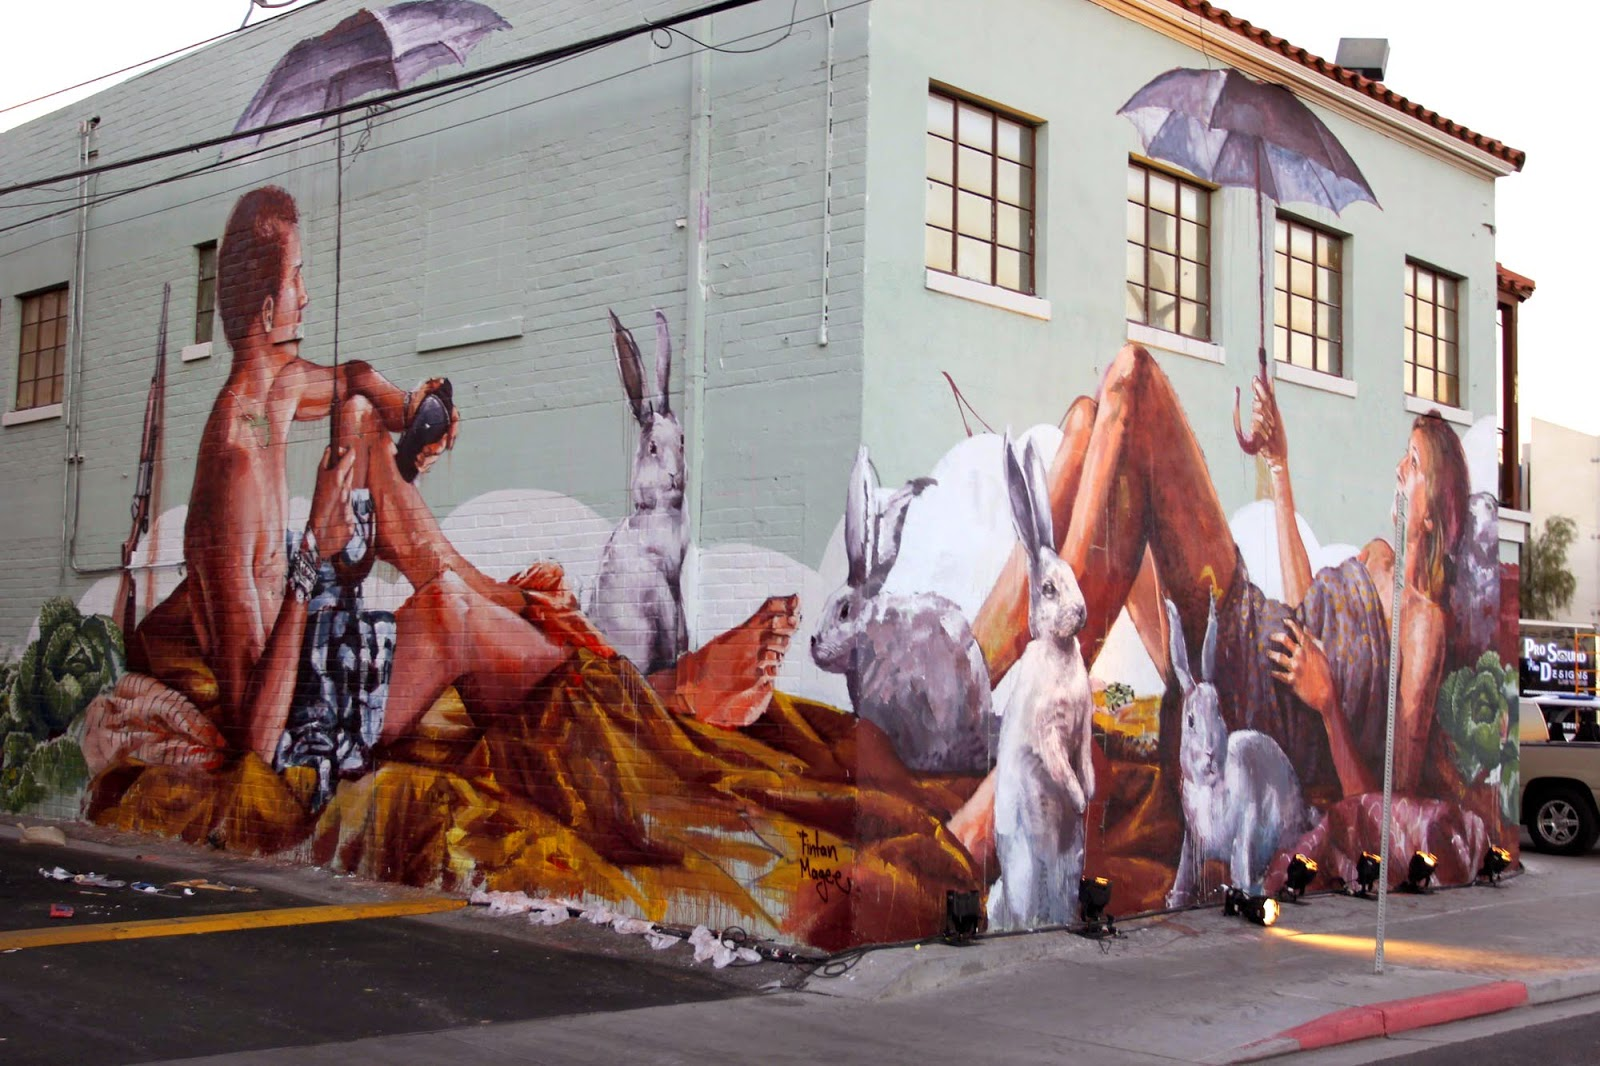 Australian superstar Fintan Magee spent the last two weeks on the sunny streets of Las Vegas where he was invited by JustKids to paint for the Life Is Beautiful Festival.